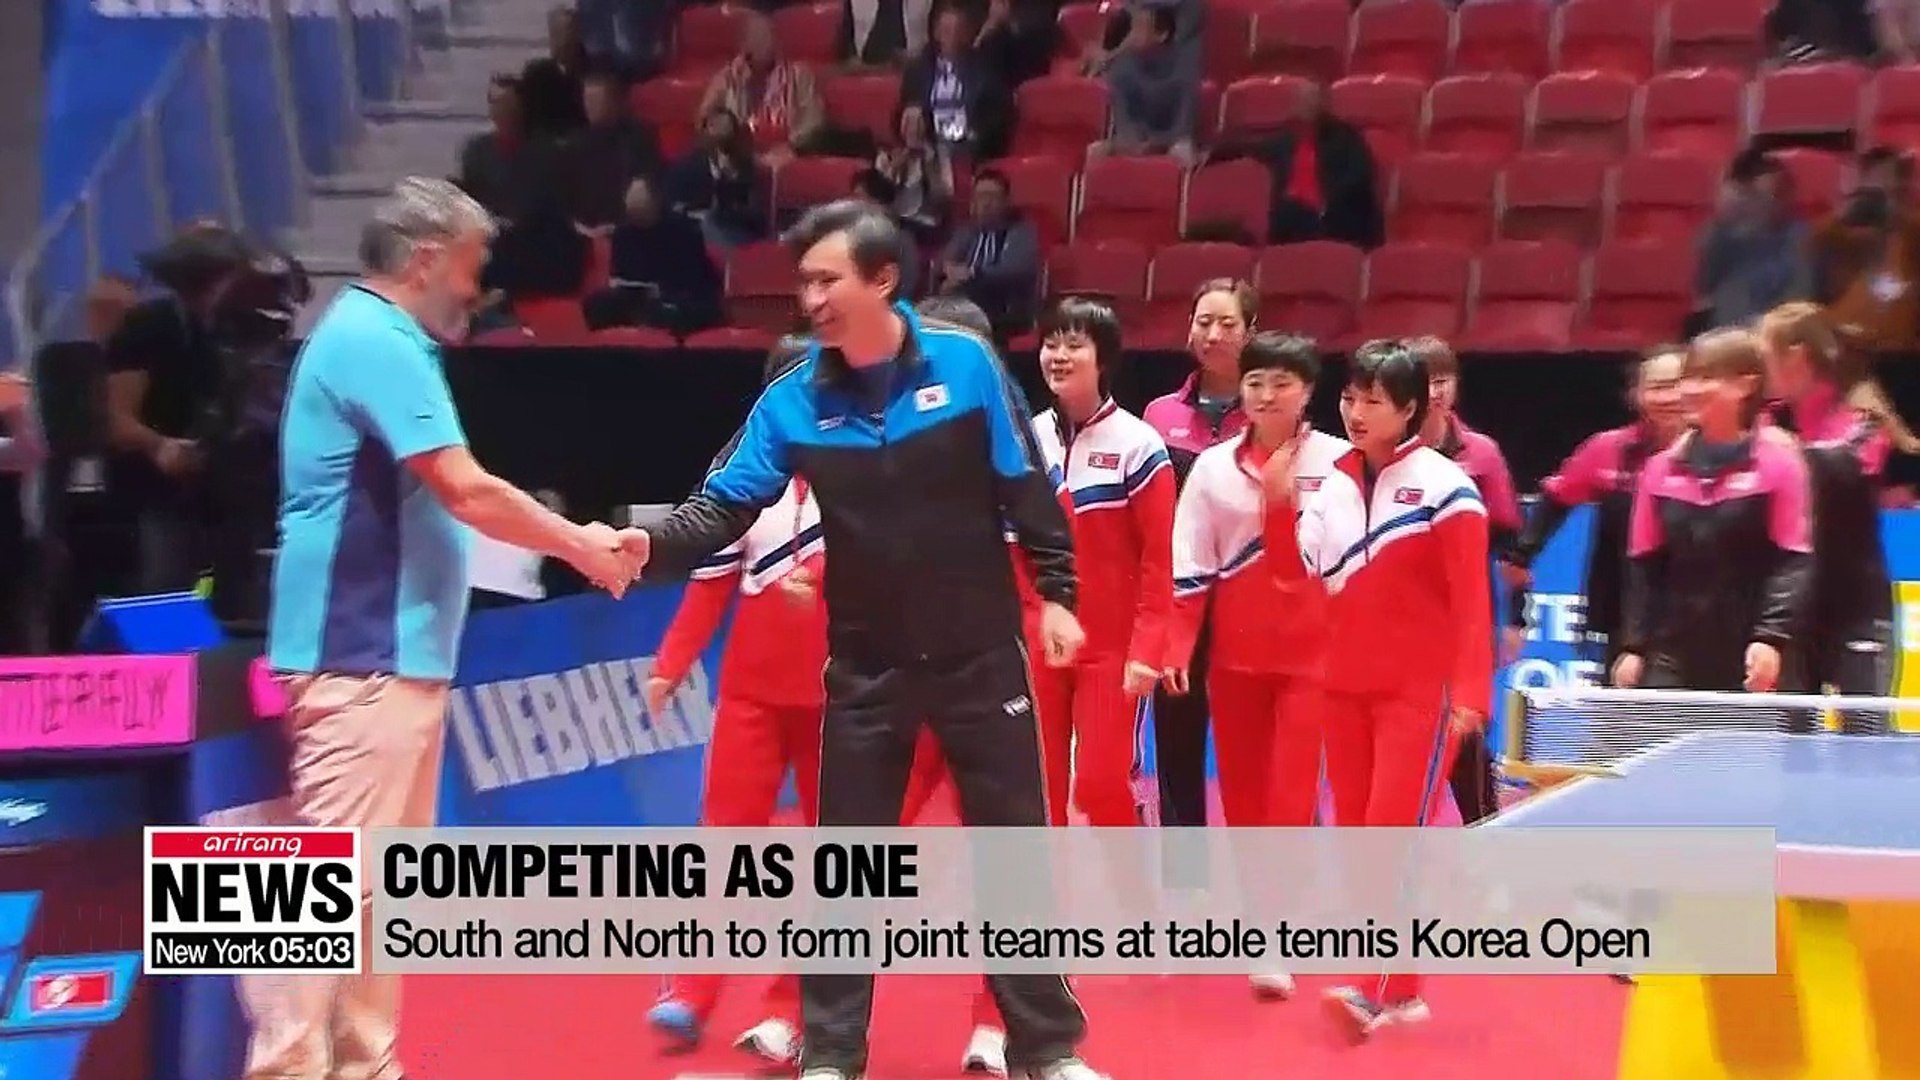 North Korean table tennis players arrive in S  Korea to form joint team  with S  Korean players at Korea Open